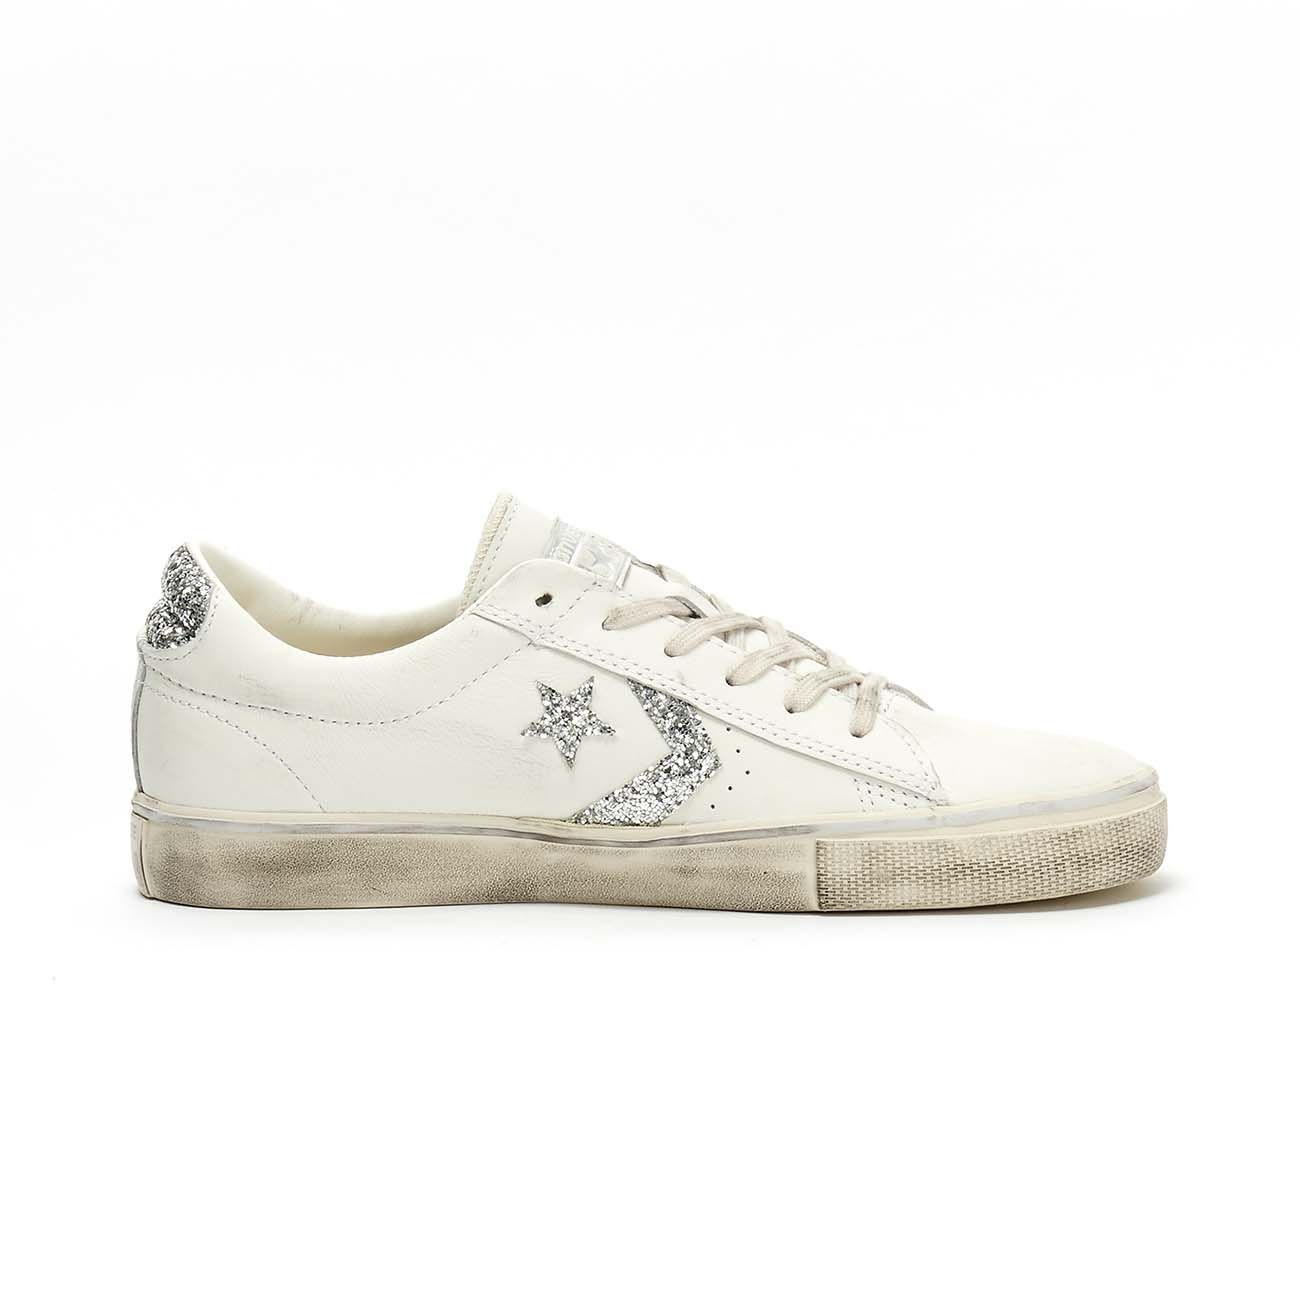 CONVERSE SNEAKERS PRO LEATHER VULC DISTRESSED OX Women White ...